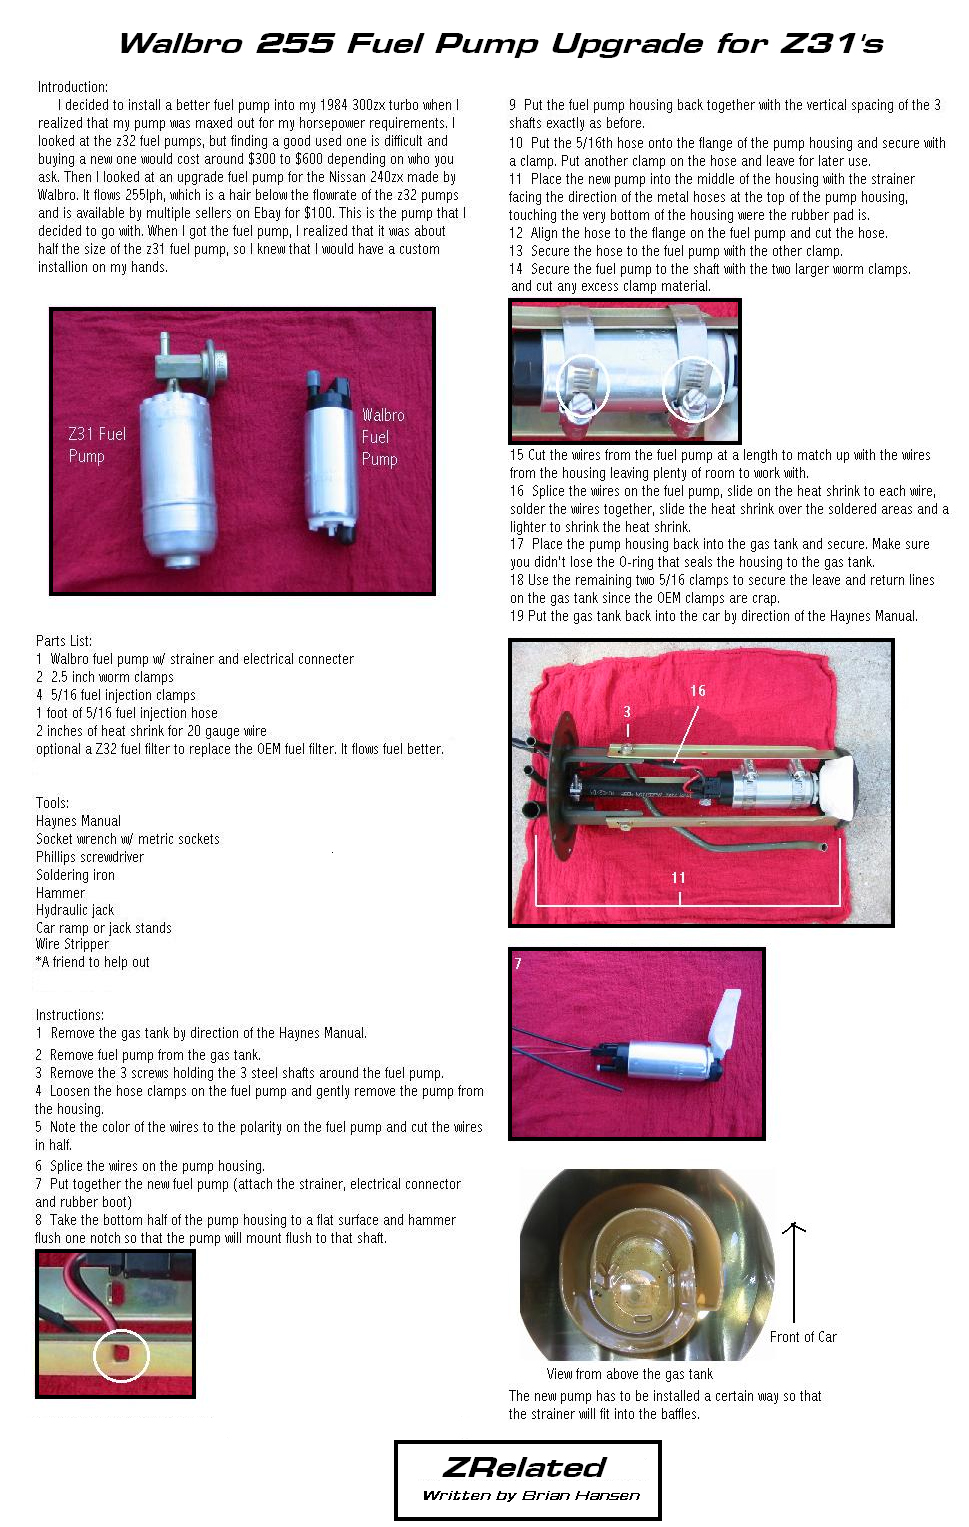 hight resolution of the stock z31 fuel pump same for na and turbo applications will have trouble keeping up fuel flow at anything over 300 crank hp